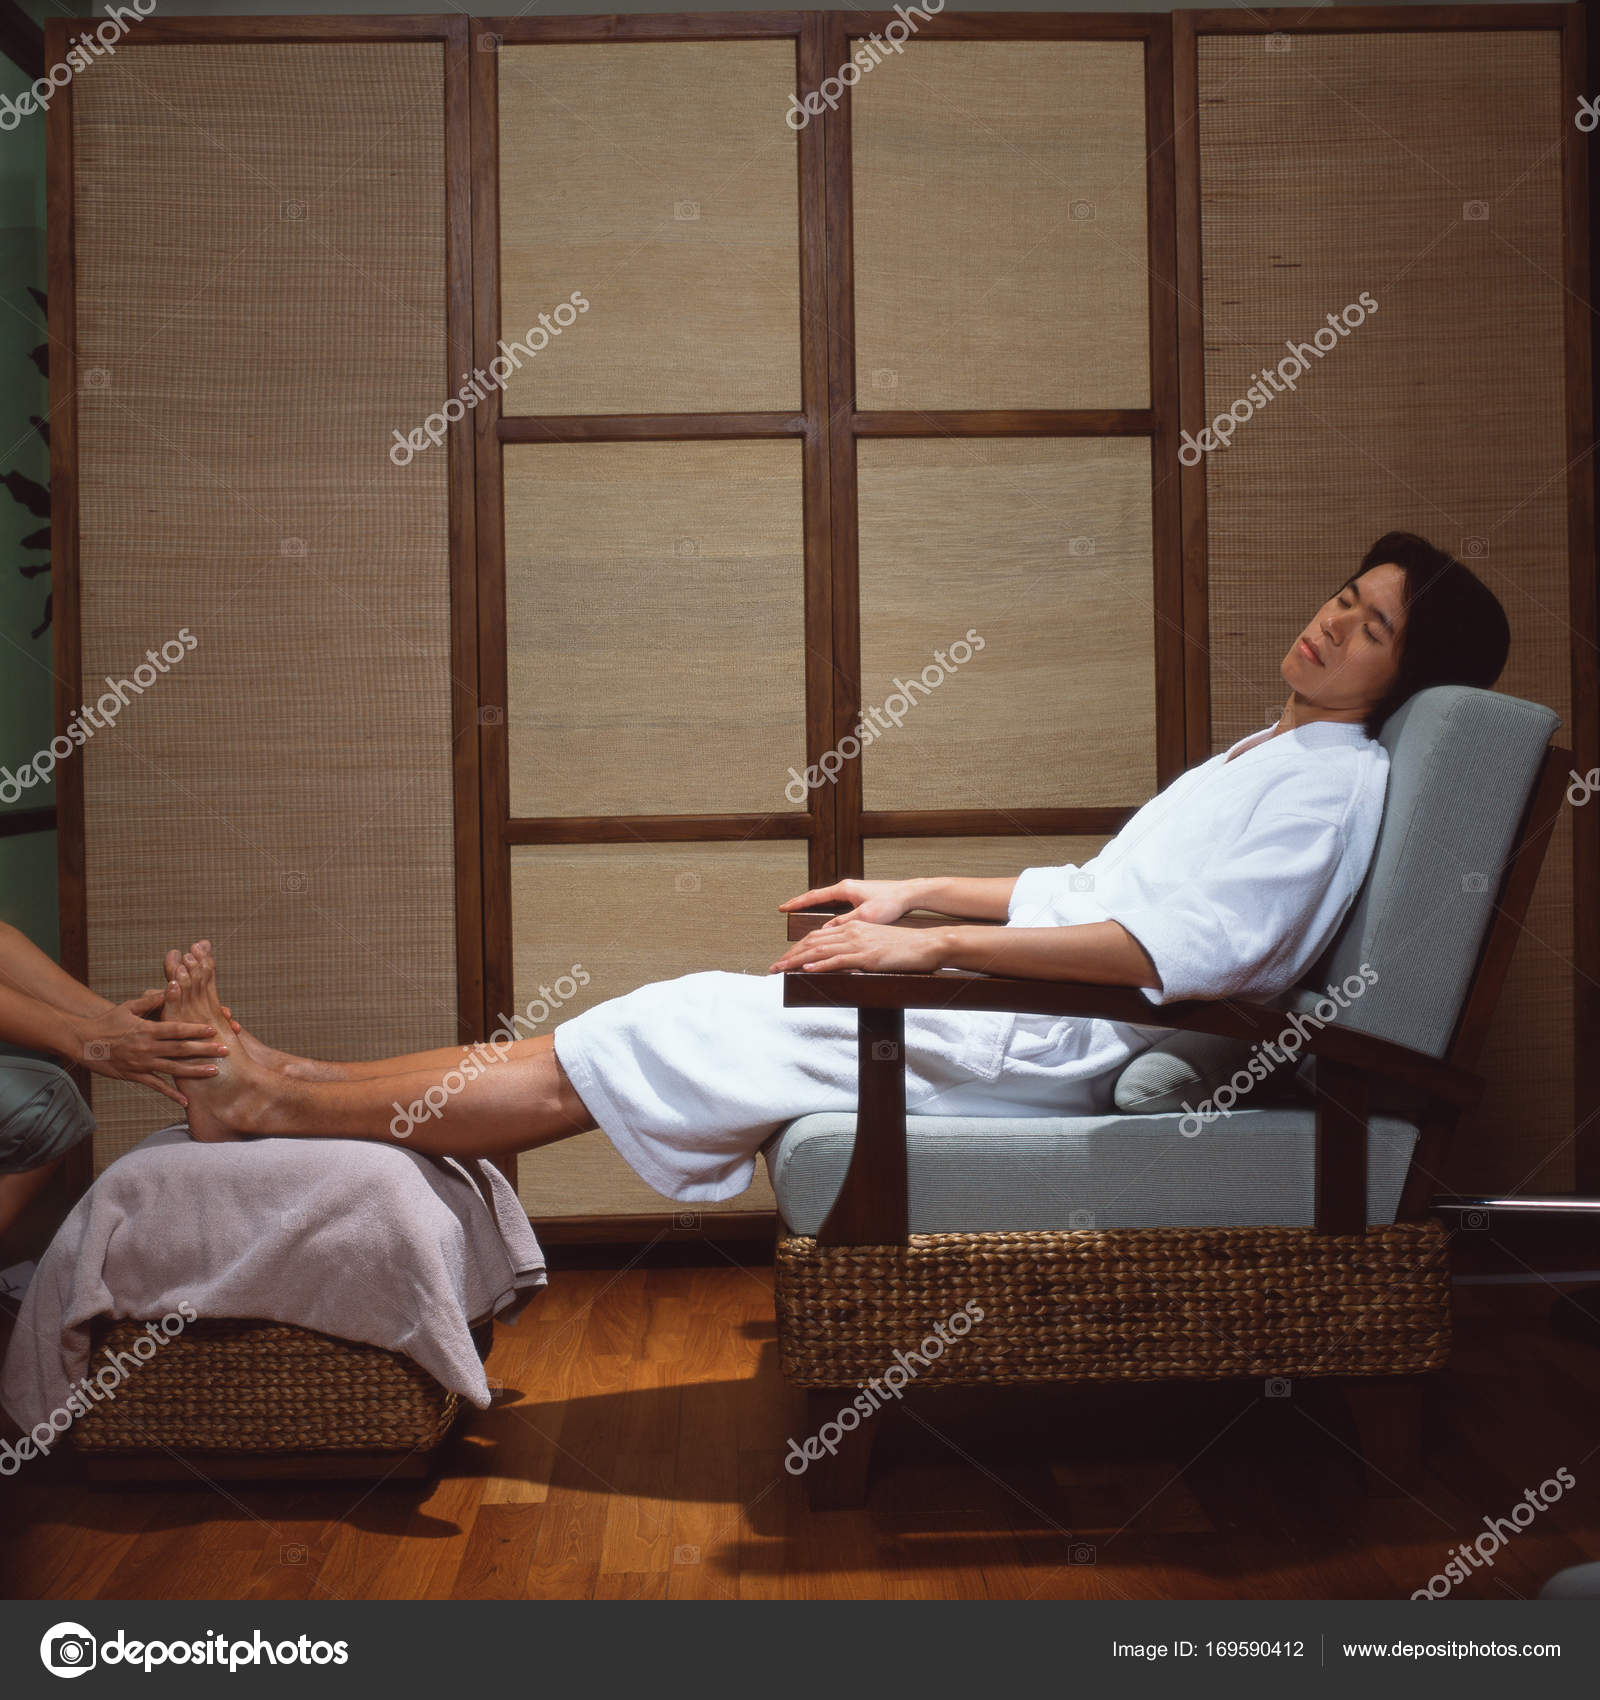 Sillones Pedicura Spa Man Laying Armchair Having Pedicure Spa Stock Photo